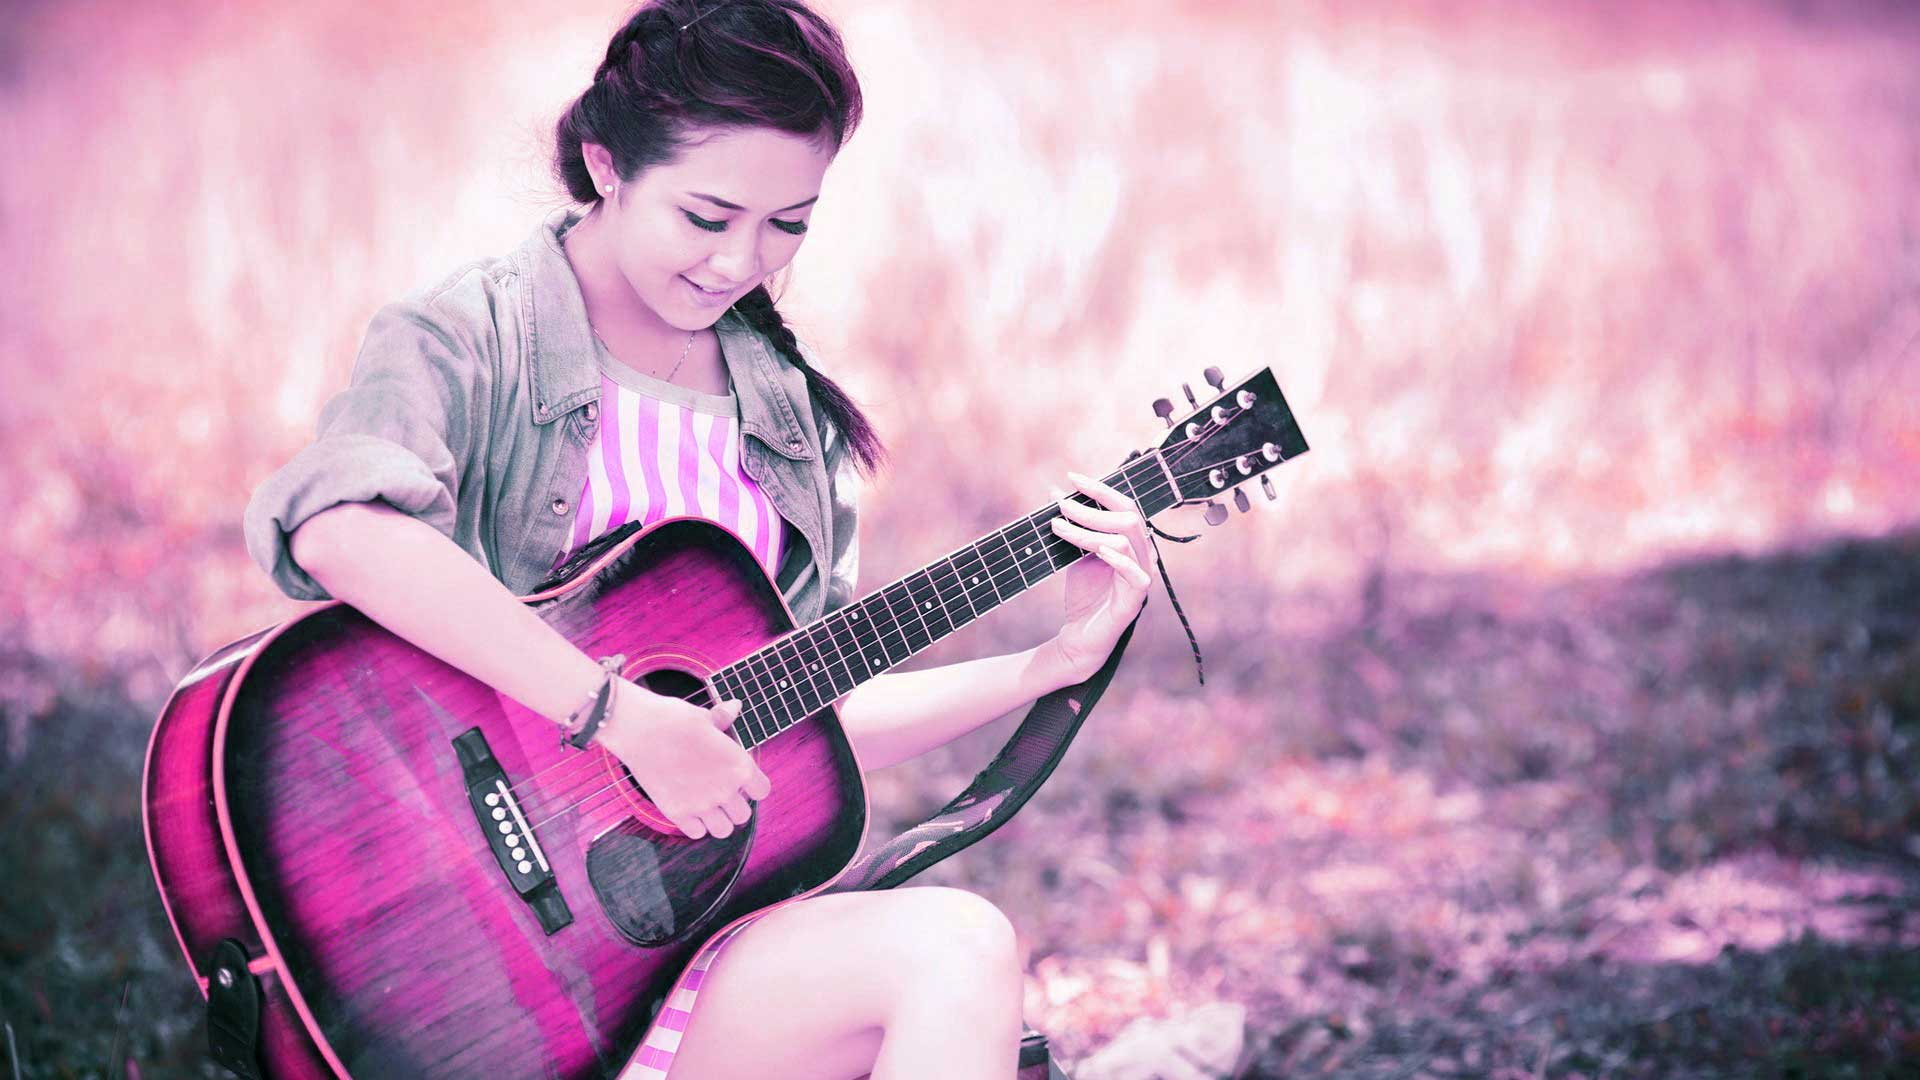 Profile Picture Quotes About Me - Beautiful Girl With Guitar Hd , HD Wallpaper & Backgrounds